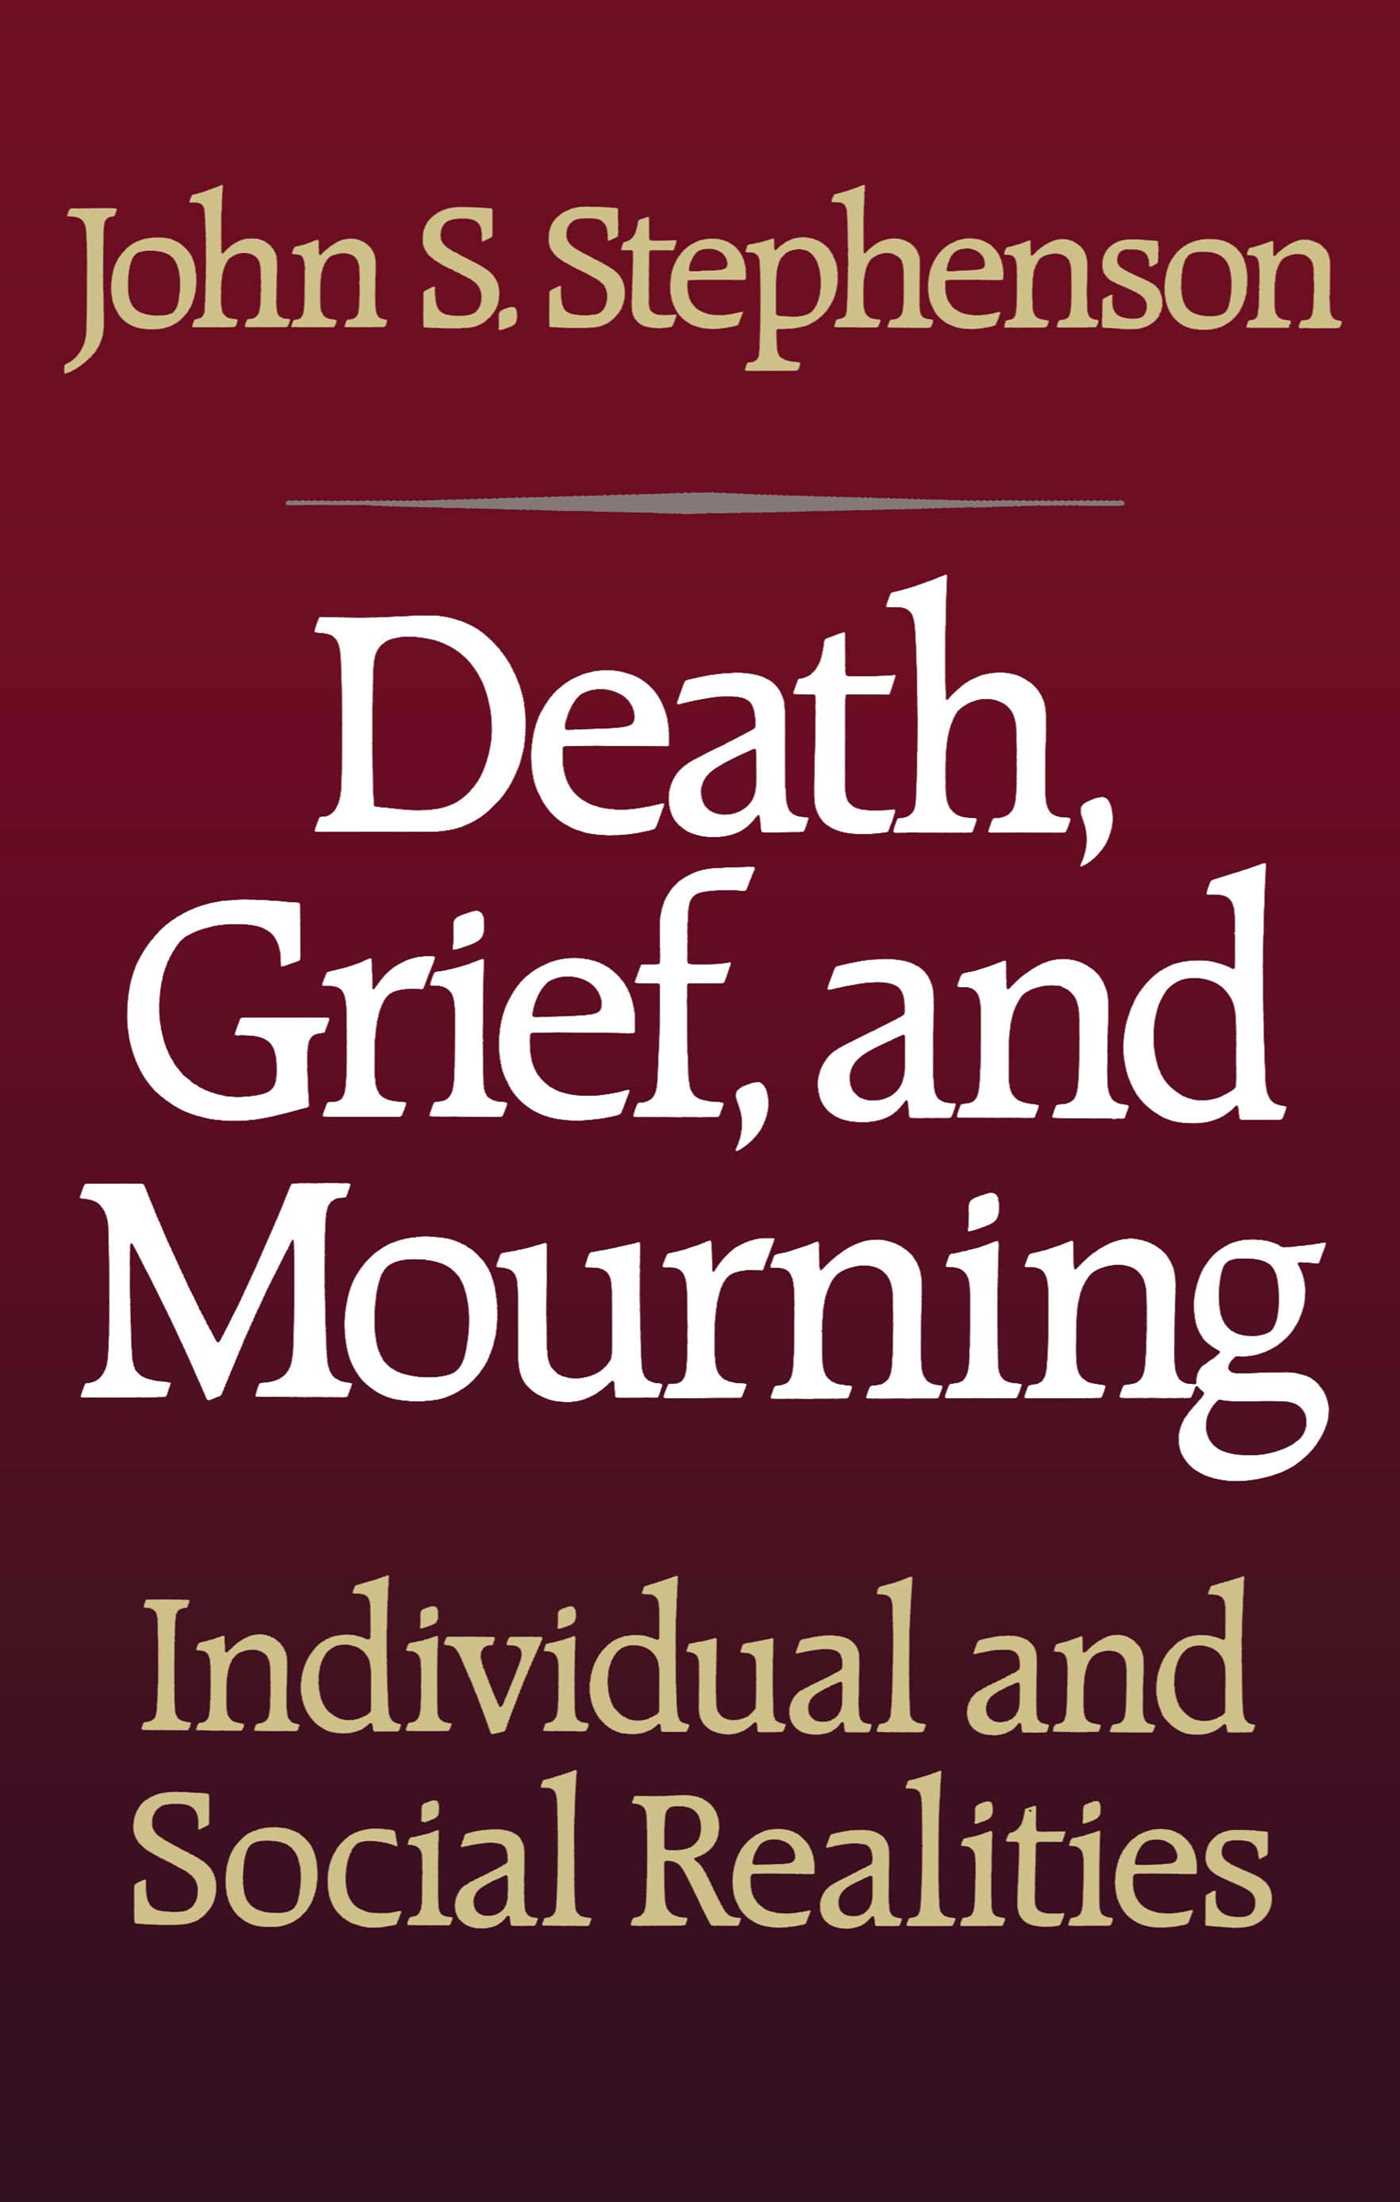 Death grief and mourning 9781416573562 hr